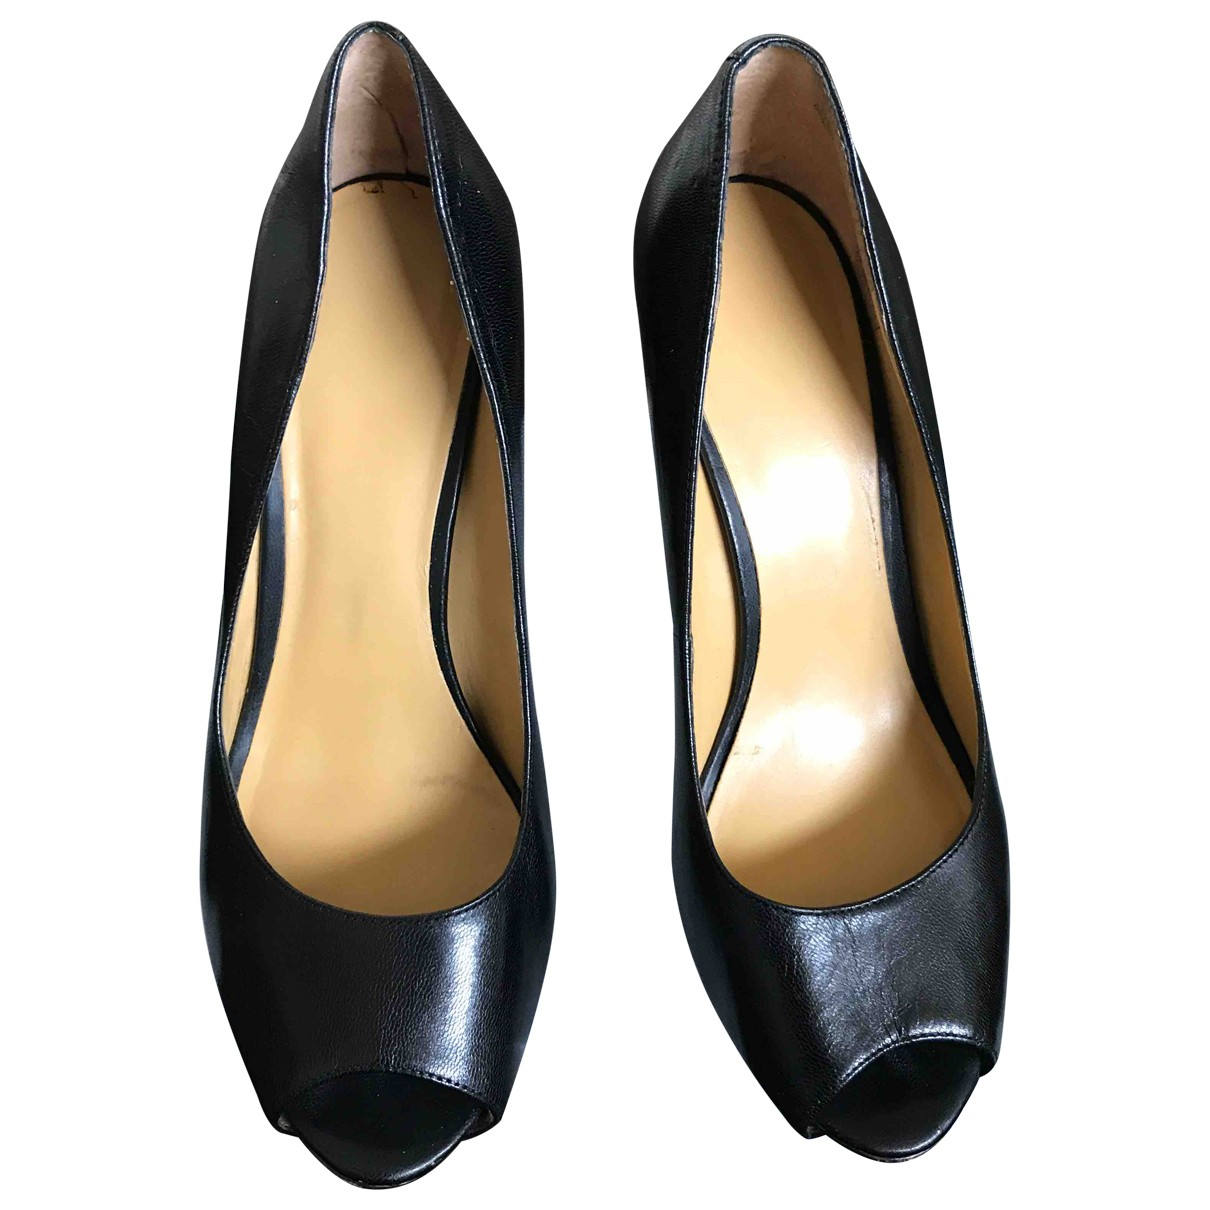 Nine West \N Black Leather Heels for Women 5 UK